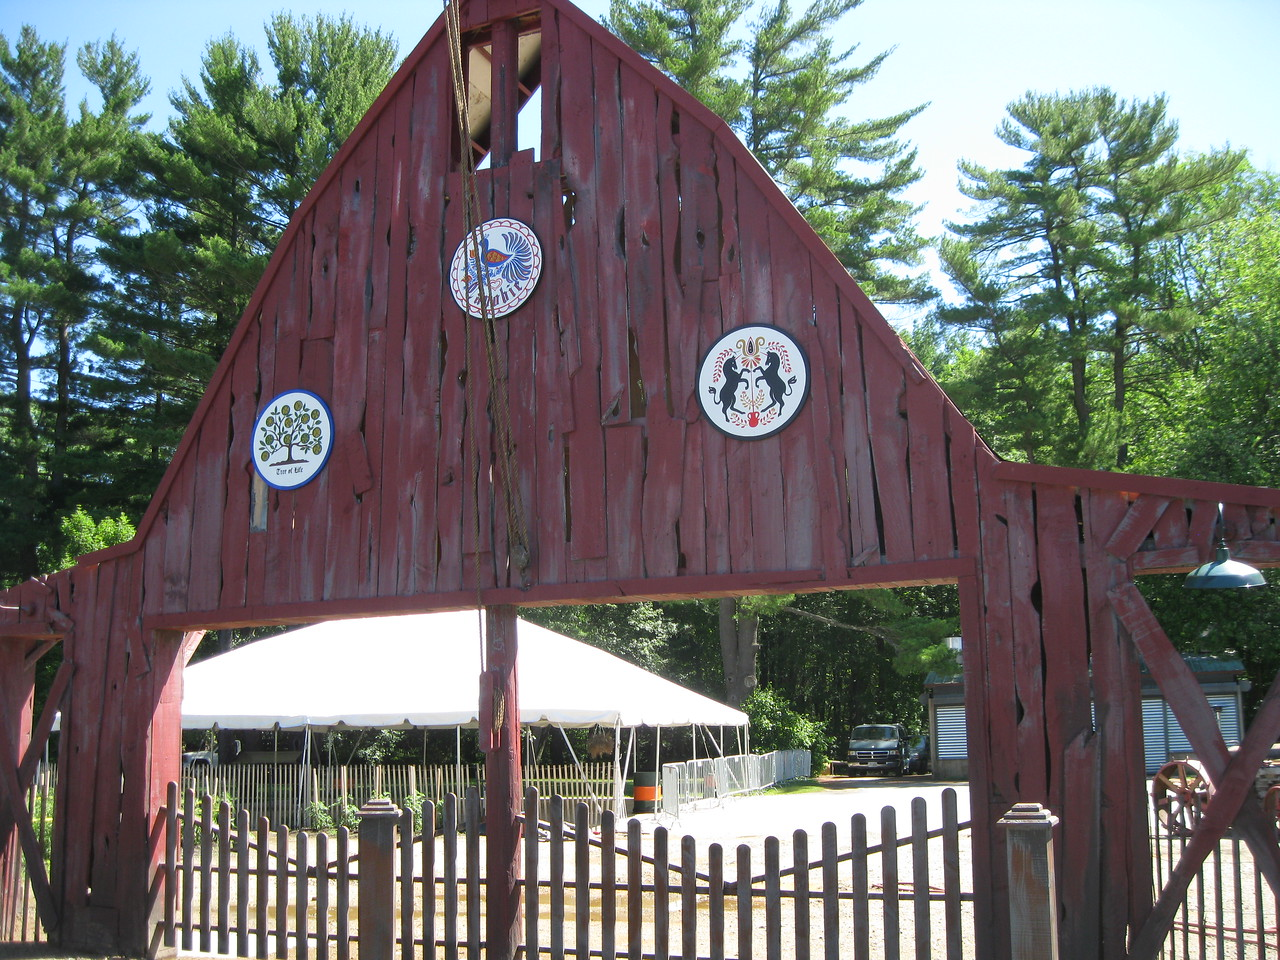 Barn facade with hex signs.